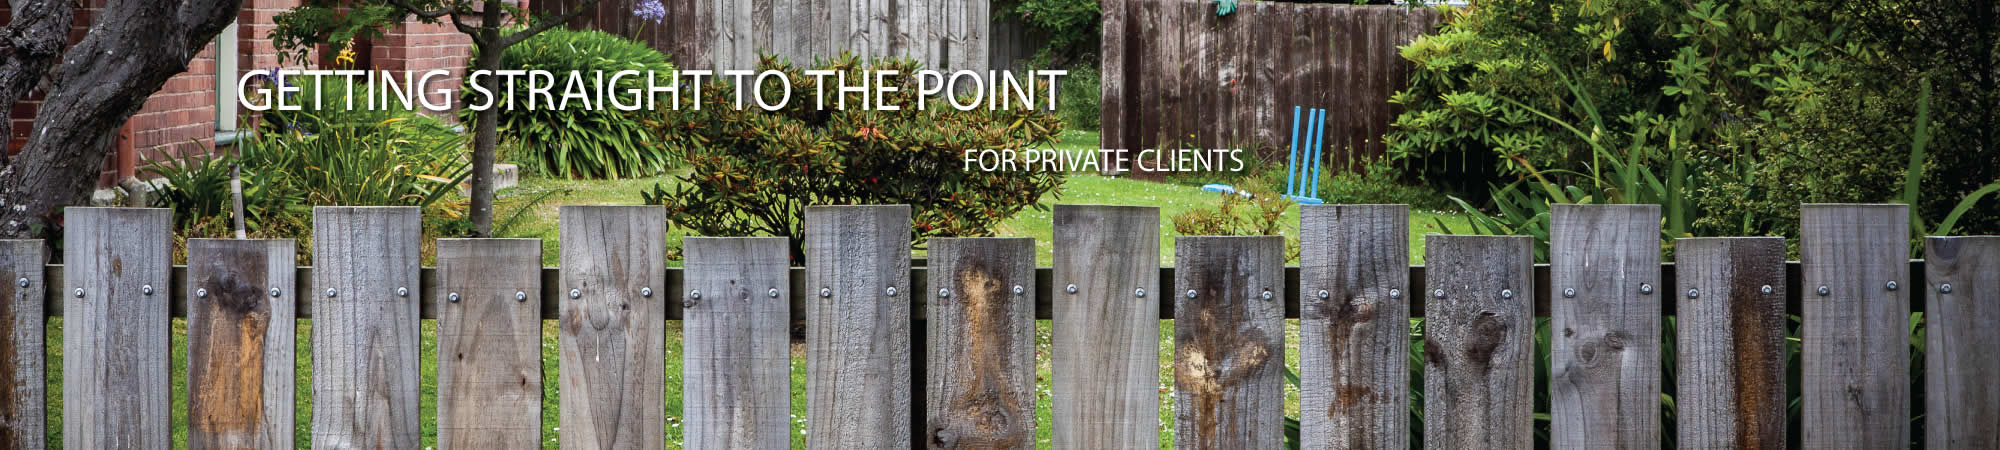 Getting straight to the point for private clients